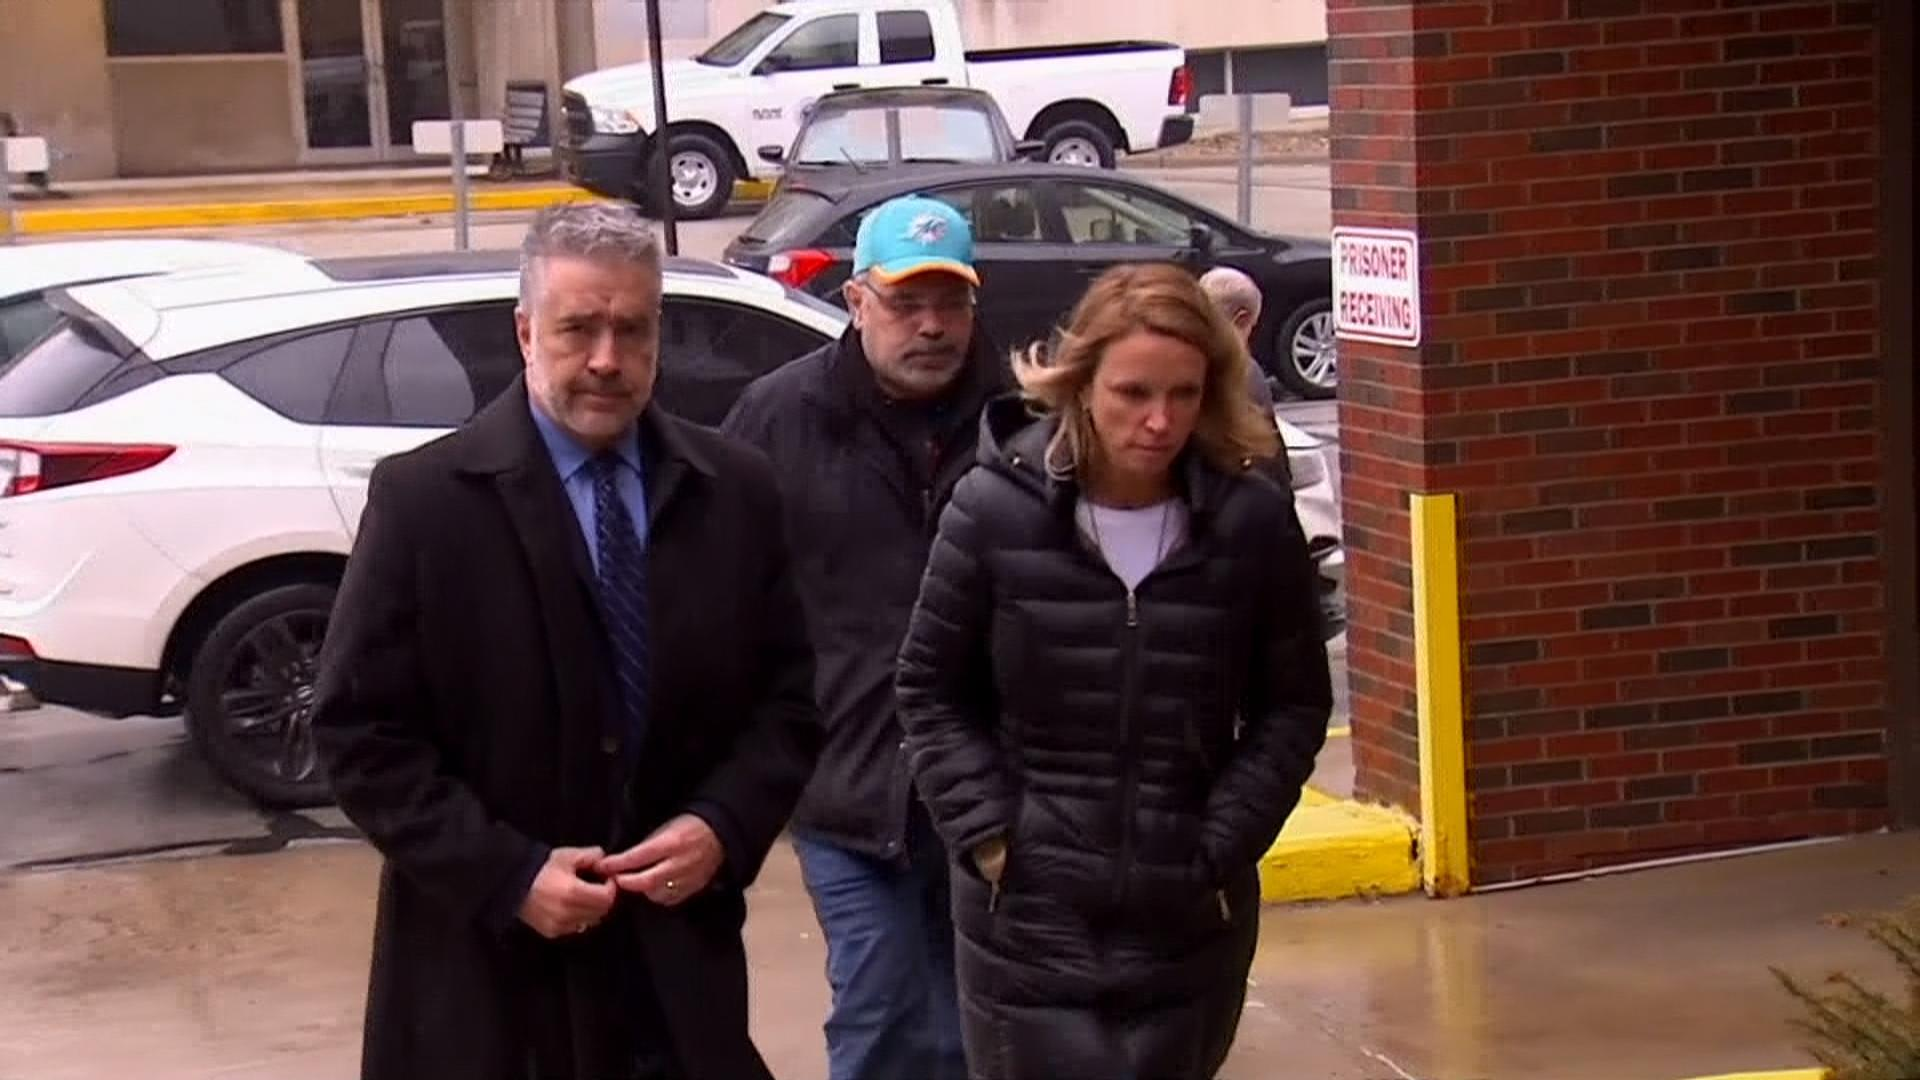 Indiana school superintendent charged with insurance fraud after helping sick student resigns